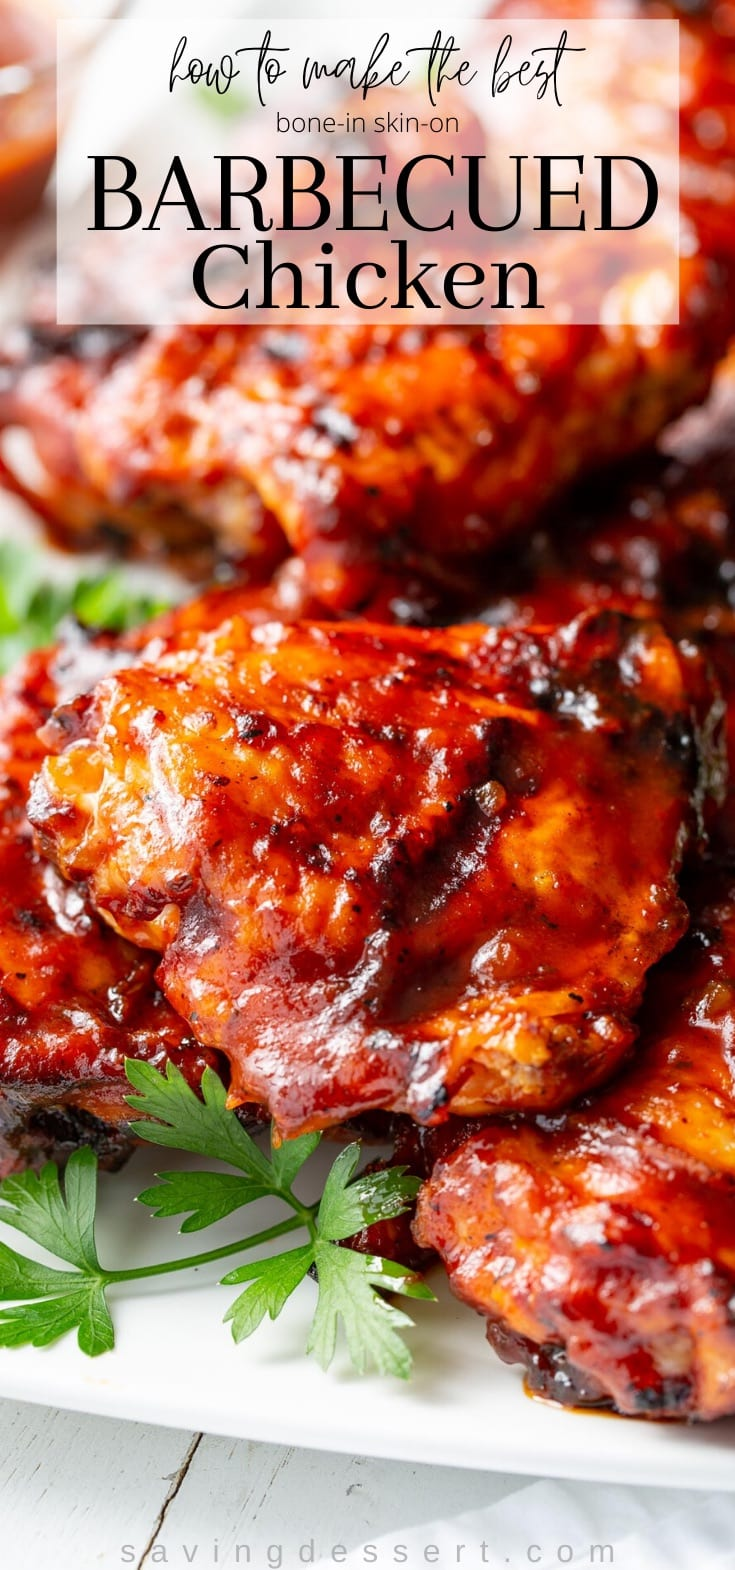 A platter of barbecued chicken pieces slathered in BBQ sauce